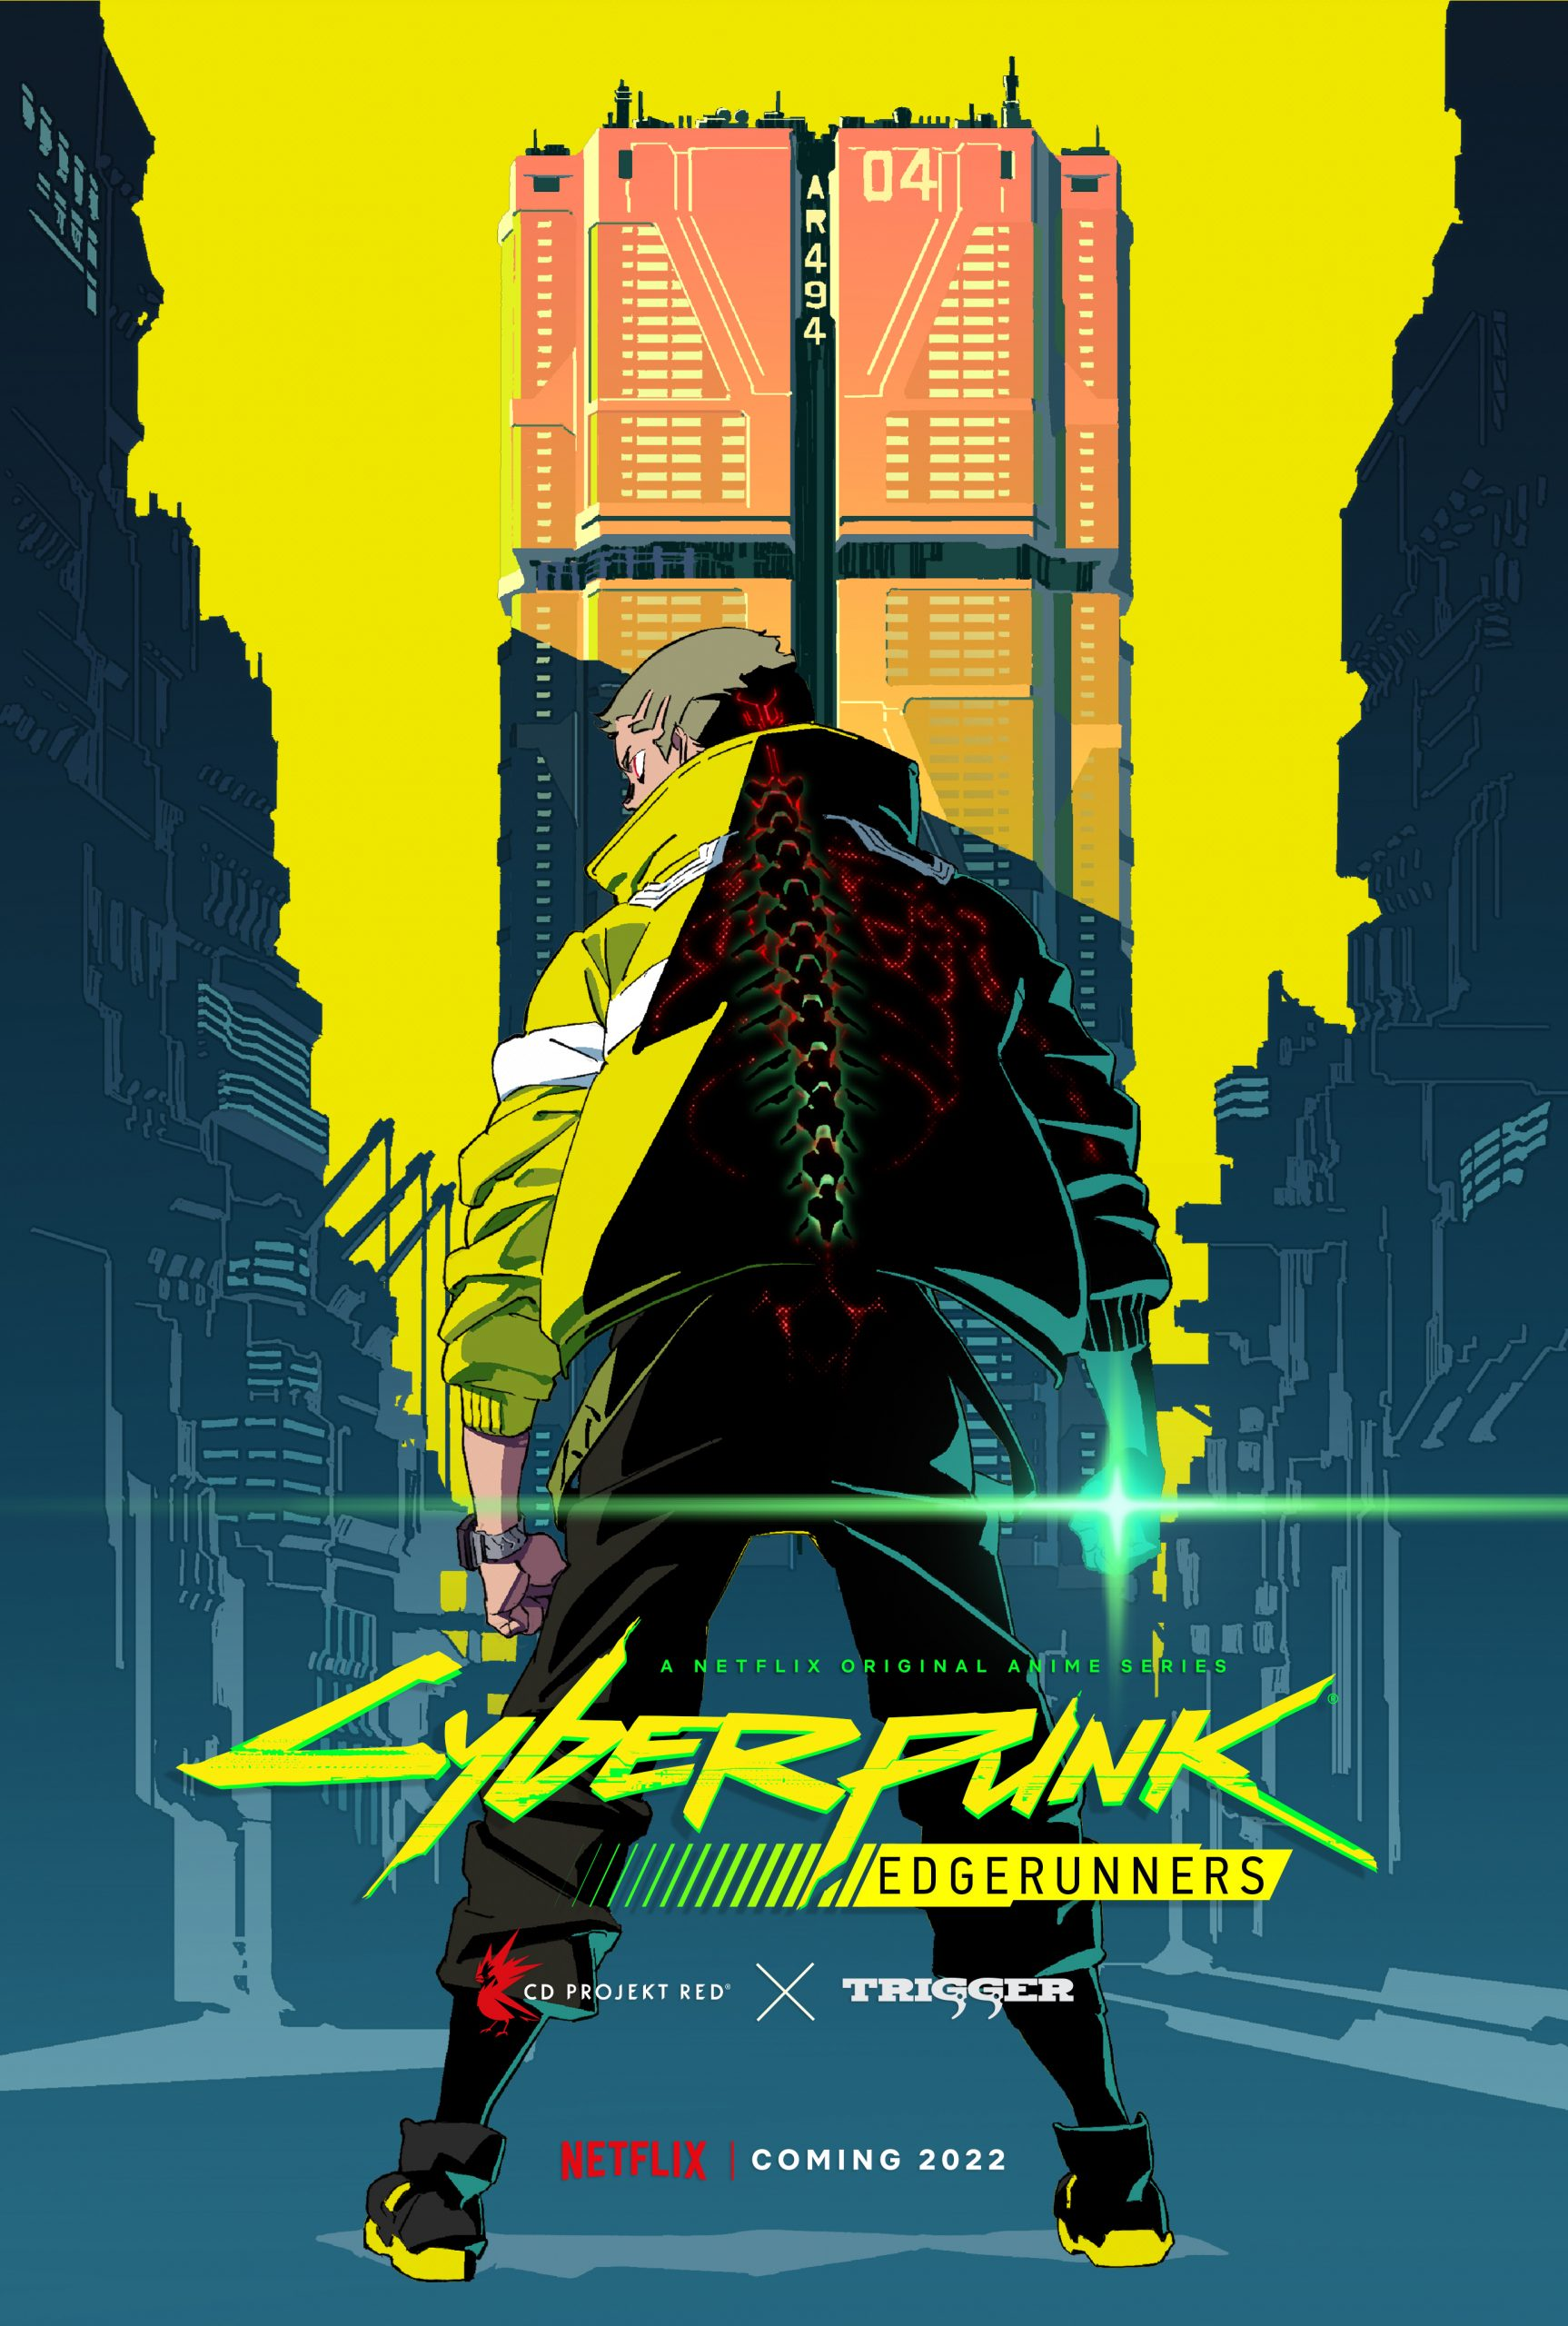 Cyberpunk the documentary (full video).